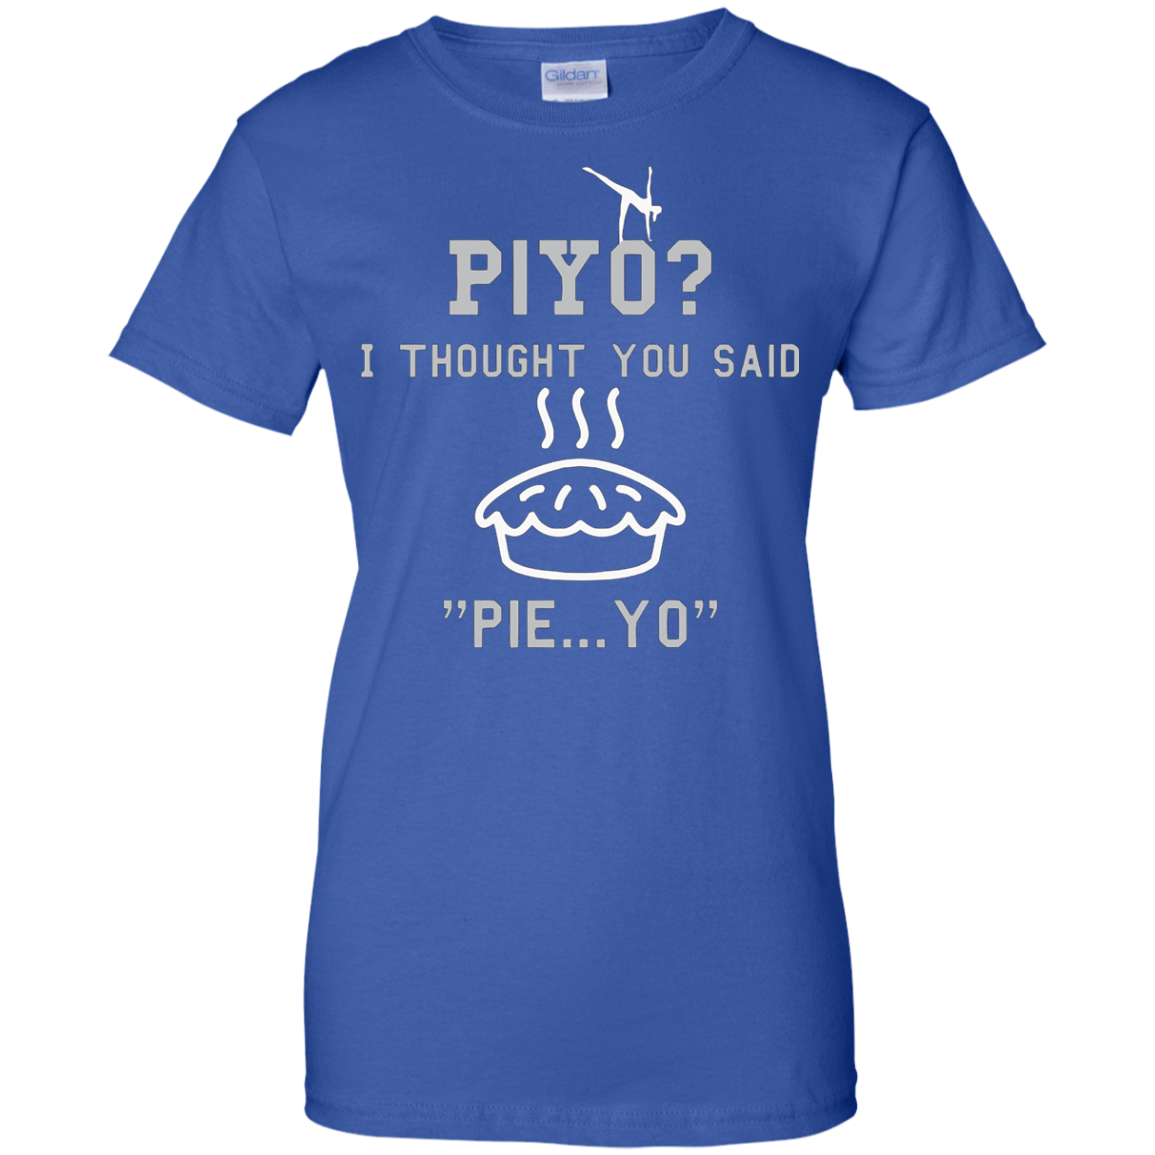 Piyo, I Thought You Said Pie Yo - Funny Piyo Shirt